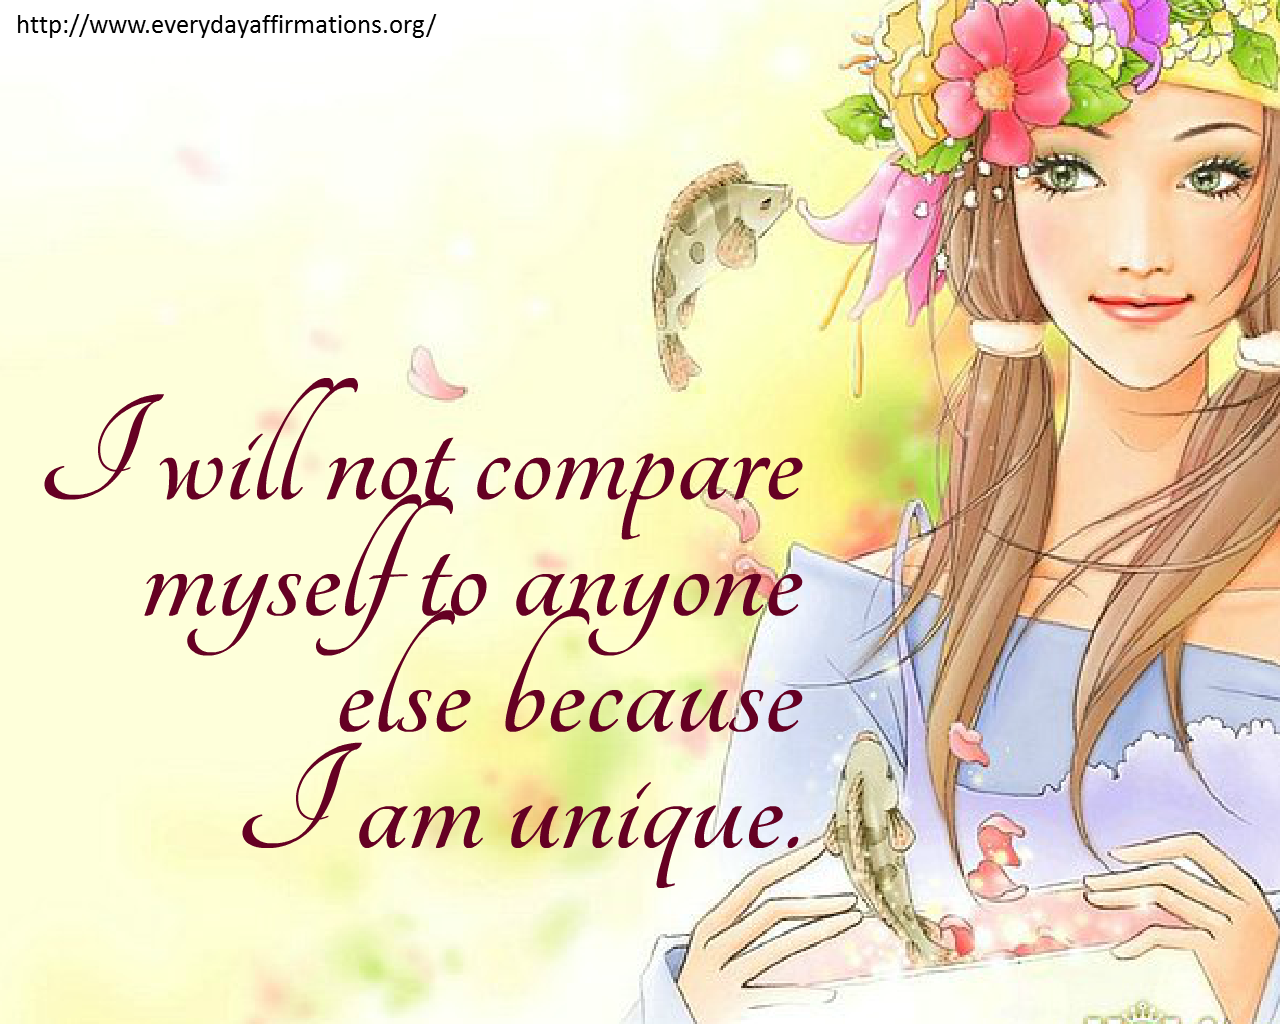 Teen Wallpapers For Girls 5 Affirmations For Every Woman To Say Every Day Everyday